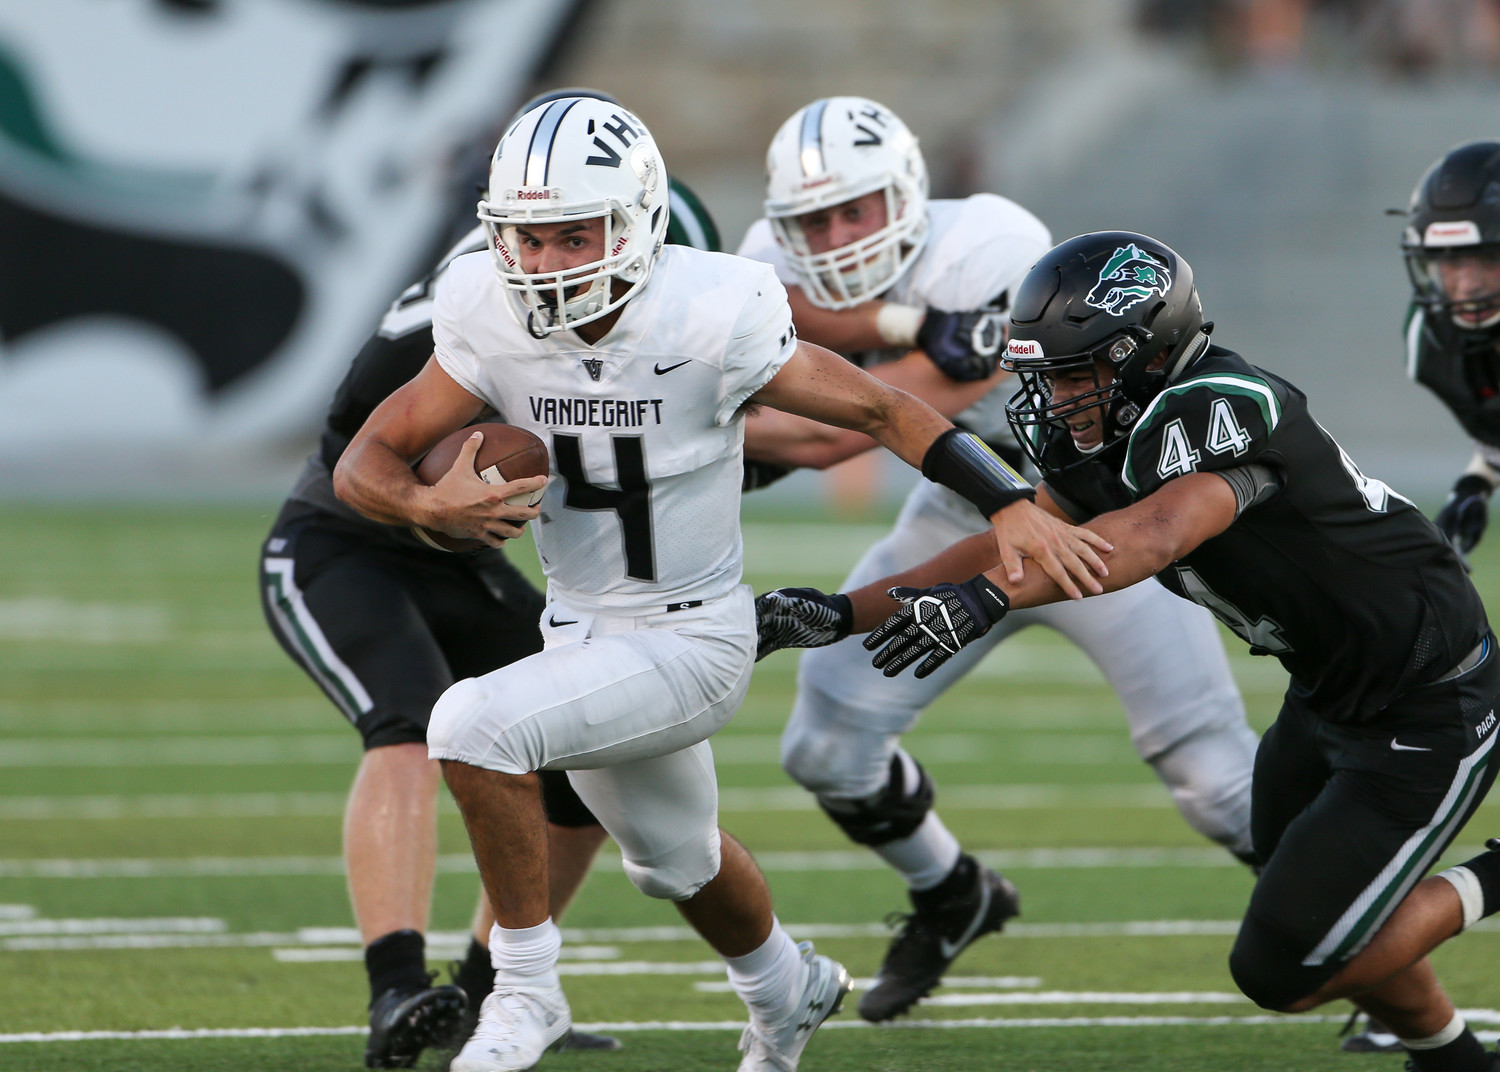 Vandegrift Vipers junior quarterback Dru Dawson (4) eludes Cedar Park Timberwolves senior linebacker Noah Morales (44) during a high school football game between the Cedar Park Timberwolves and the Vandegrift Vipers on Friday, Aug. 31, 2018 in Cedar Park, Texas.